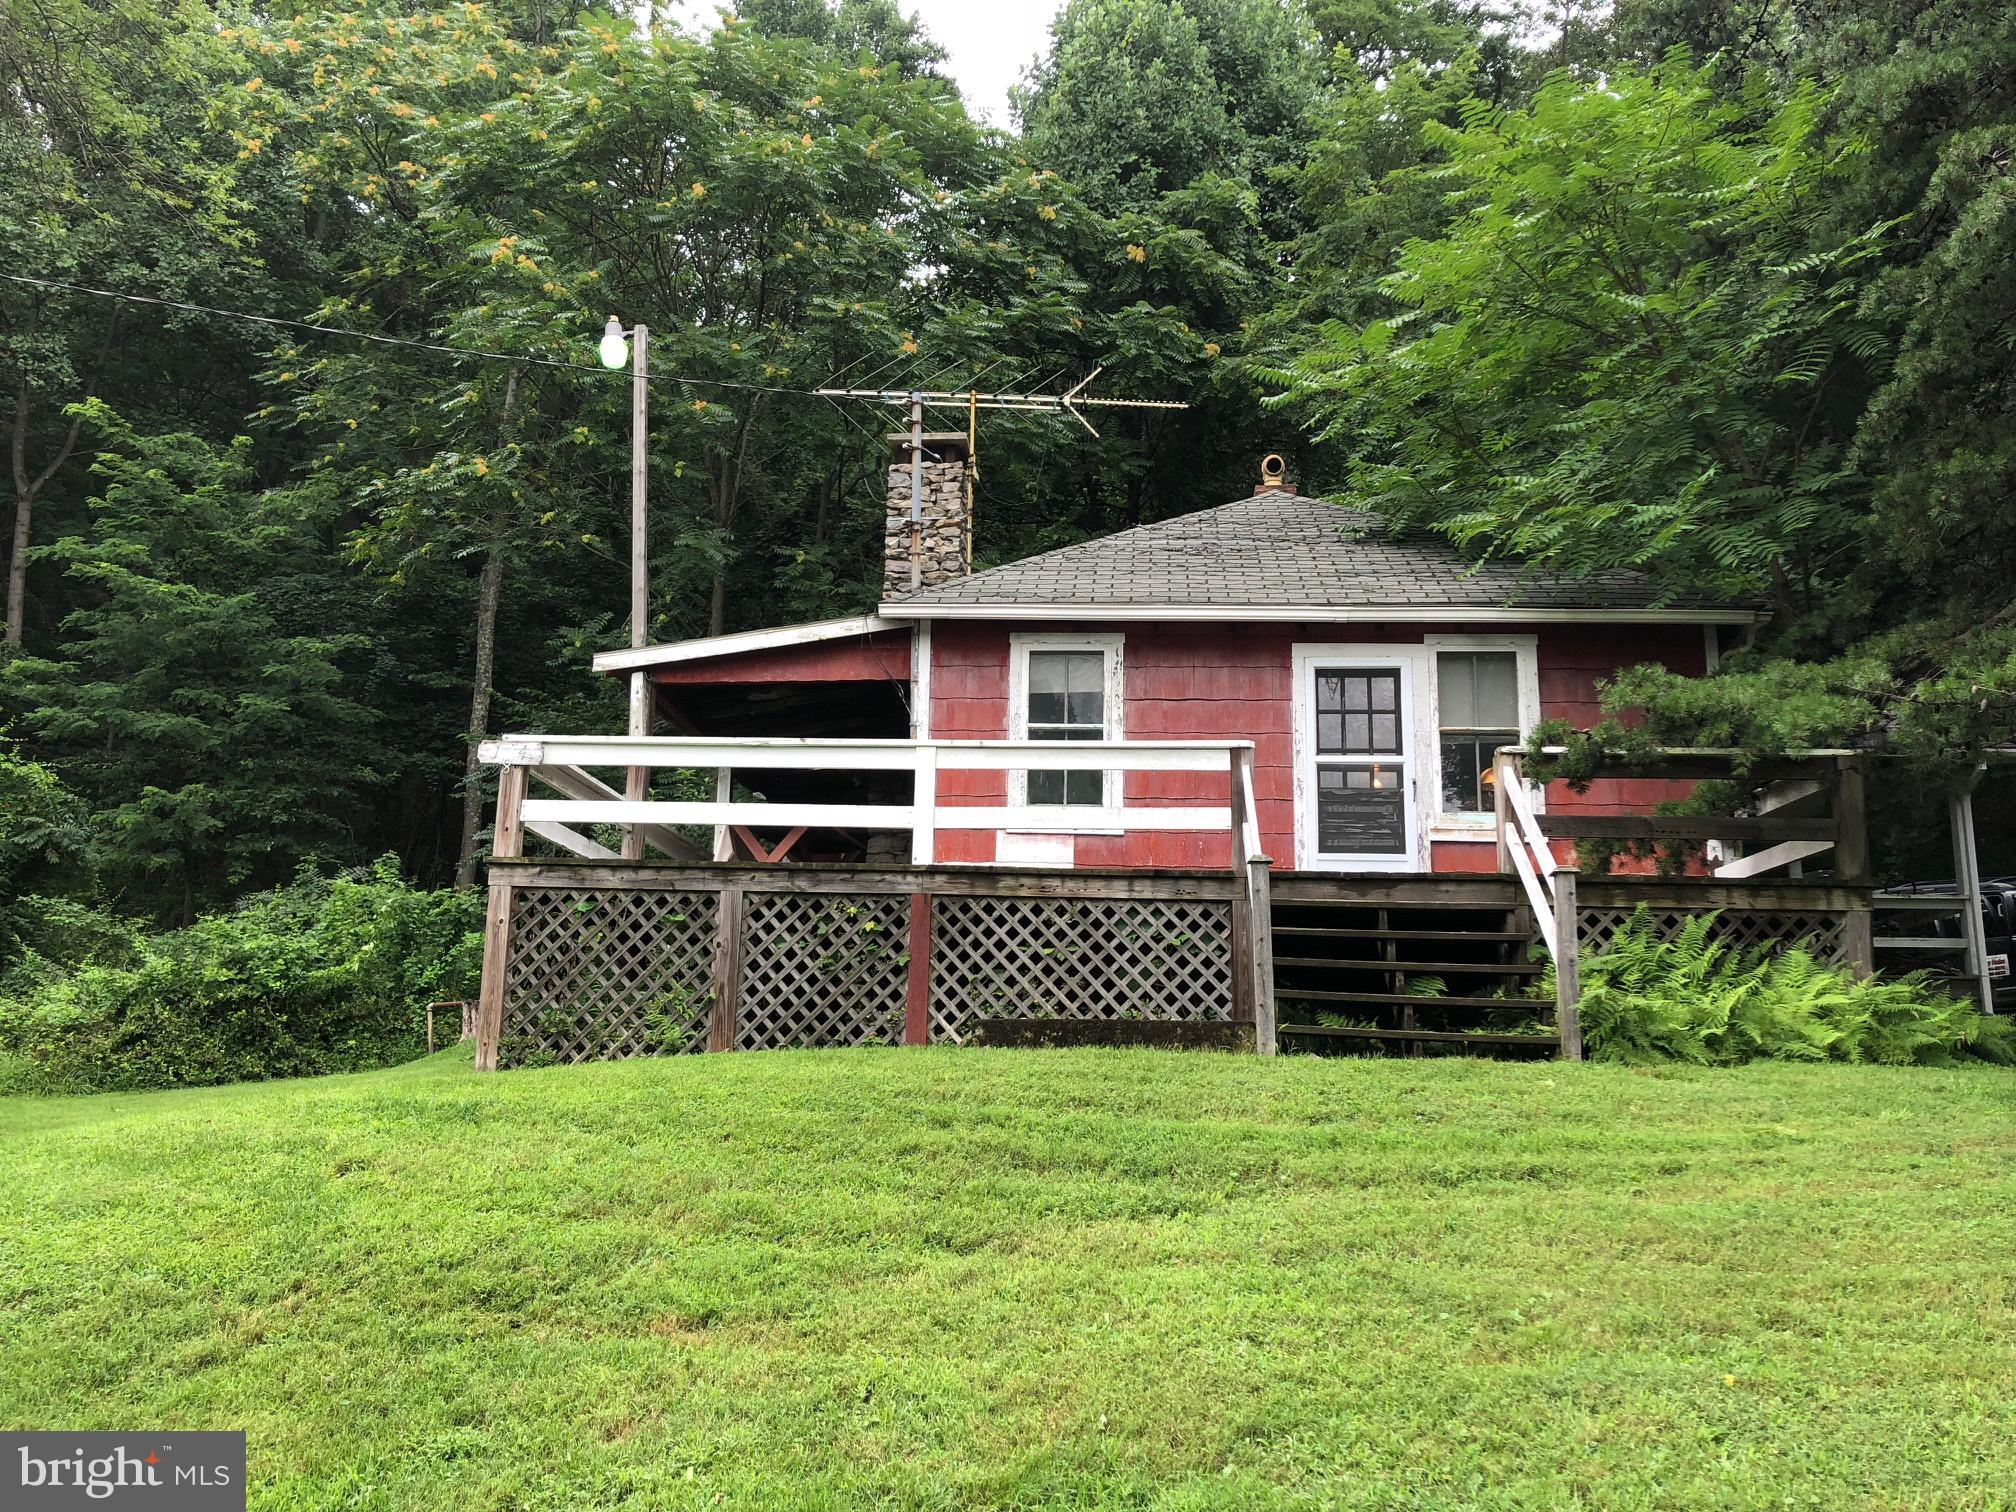 184 TUNNEL LANE, FAIRFIELD, PA 17320